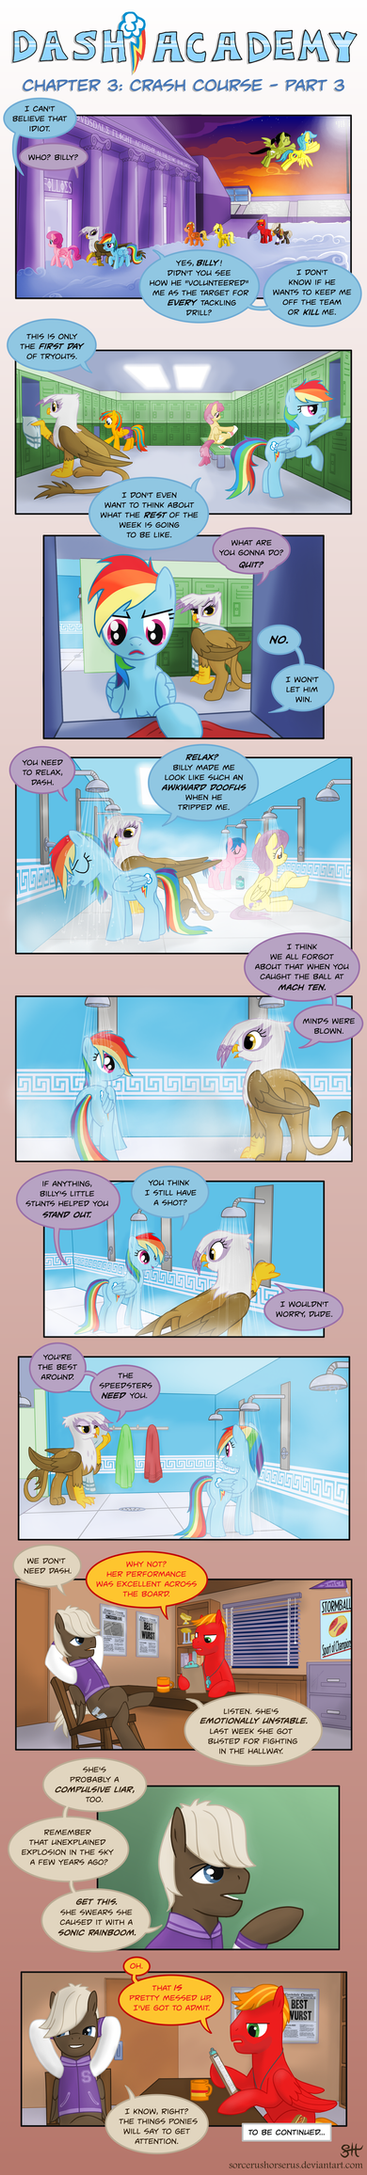 Dash Academy 3- Crash Course 3 by SorcerusHorserus